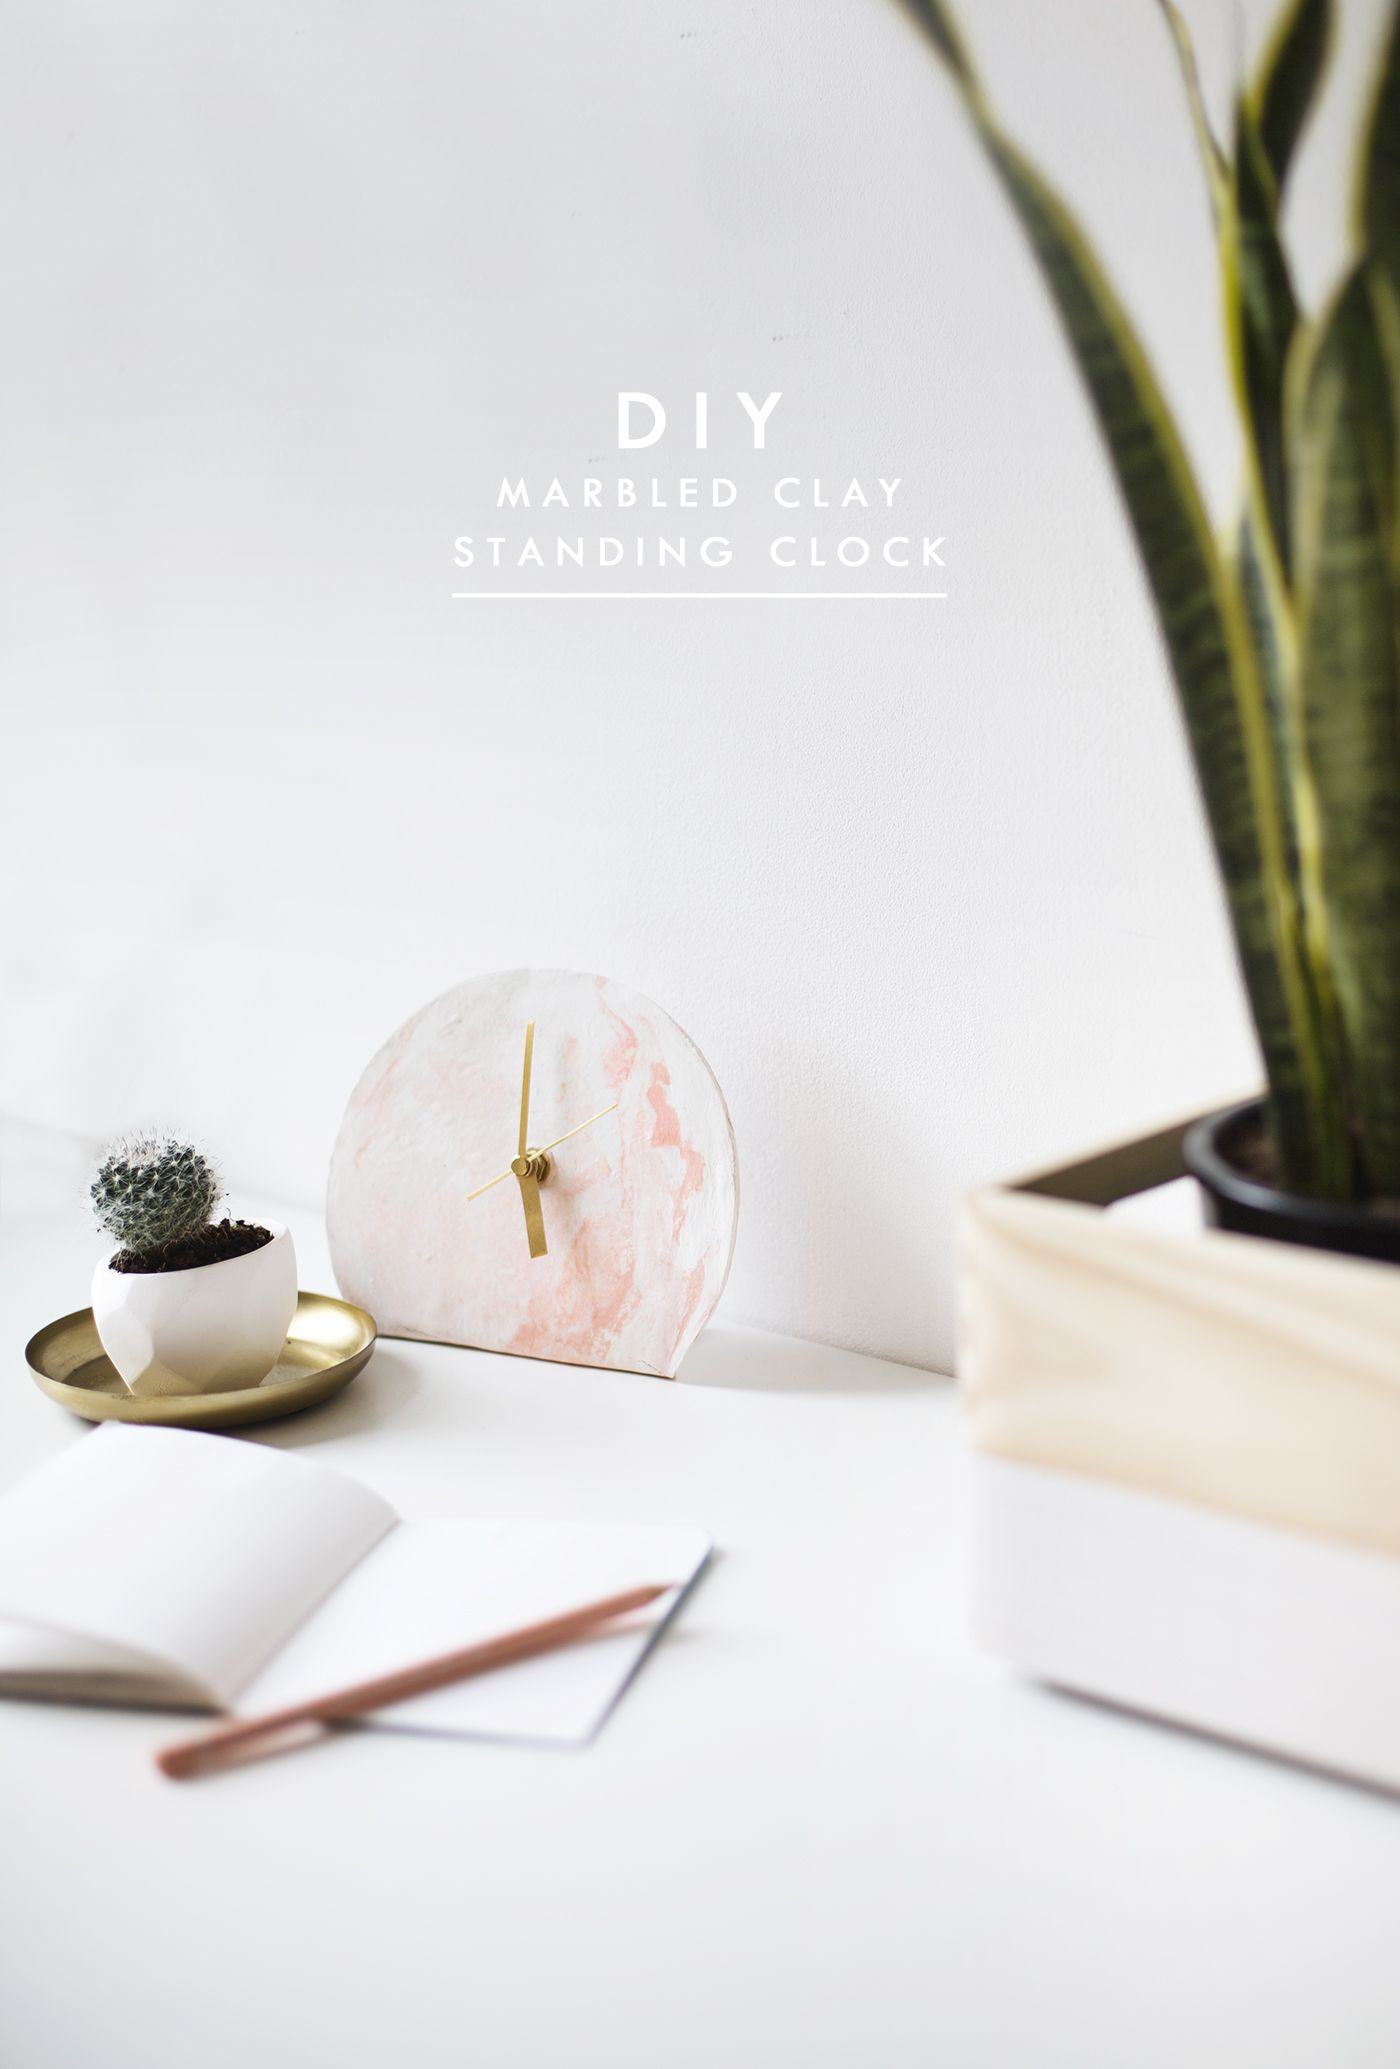 Right On Time Diy Home And Decor Pinterest Diy Diy Clay And